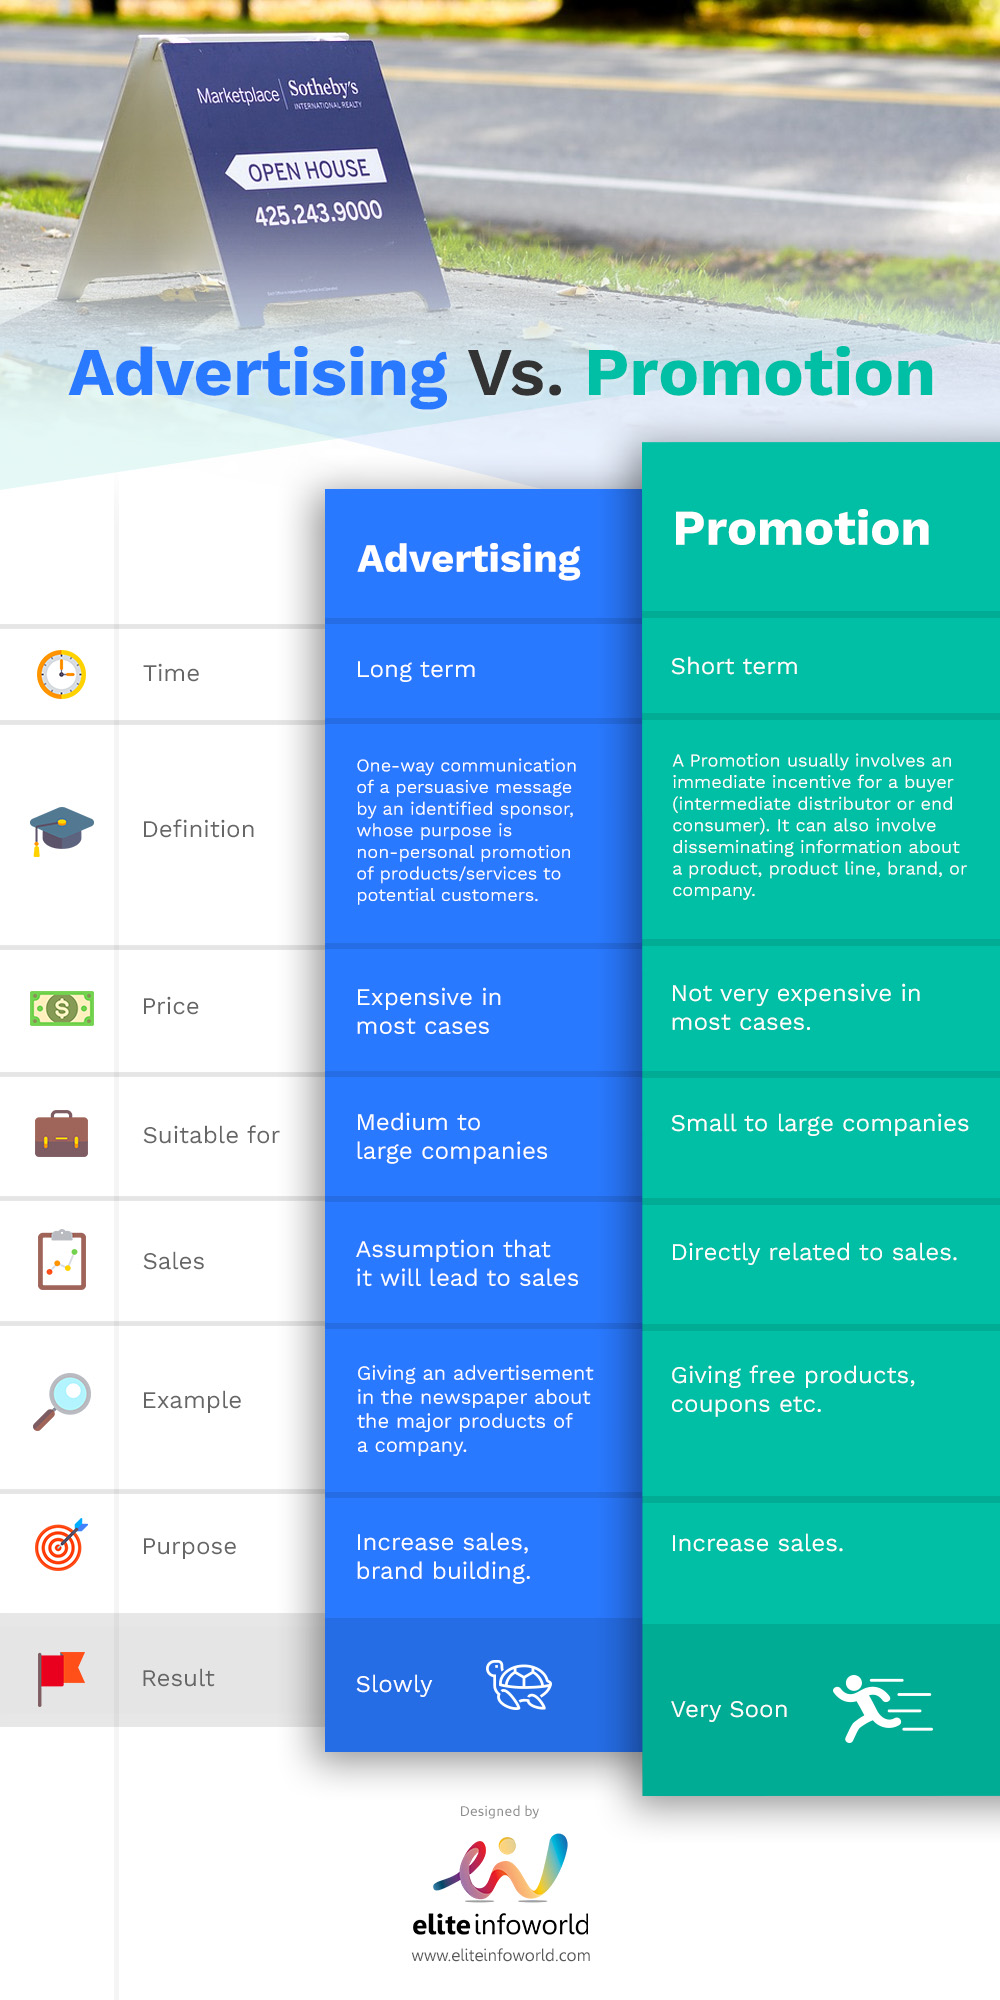 Advertising-Vs-Promotion-Infographic-plaza